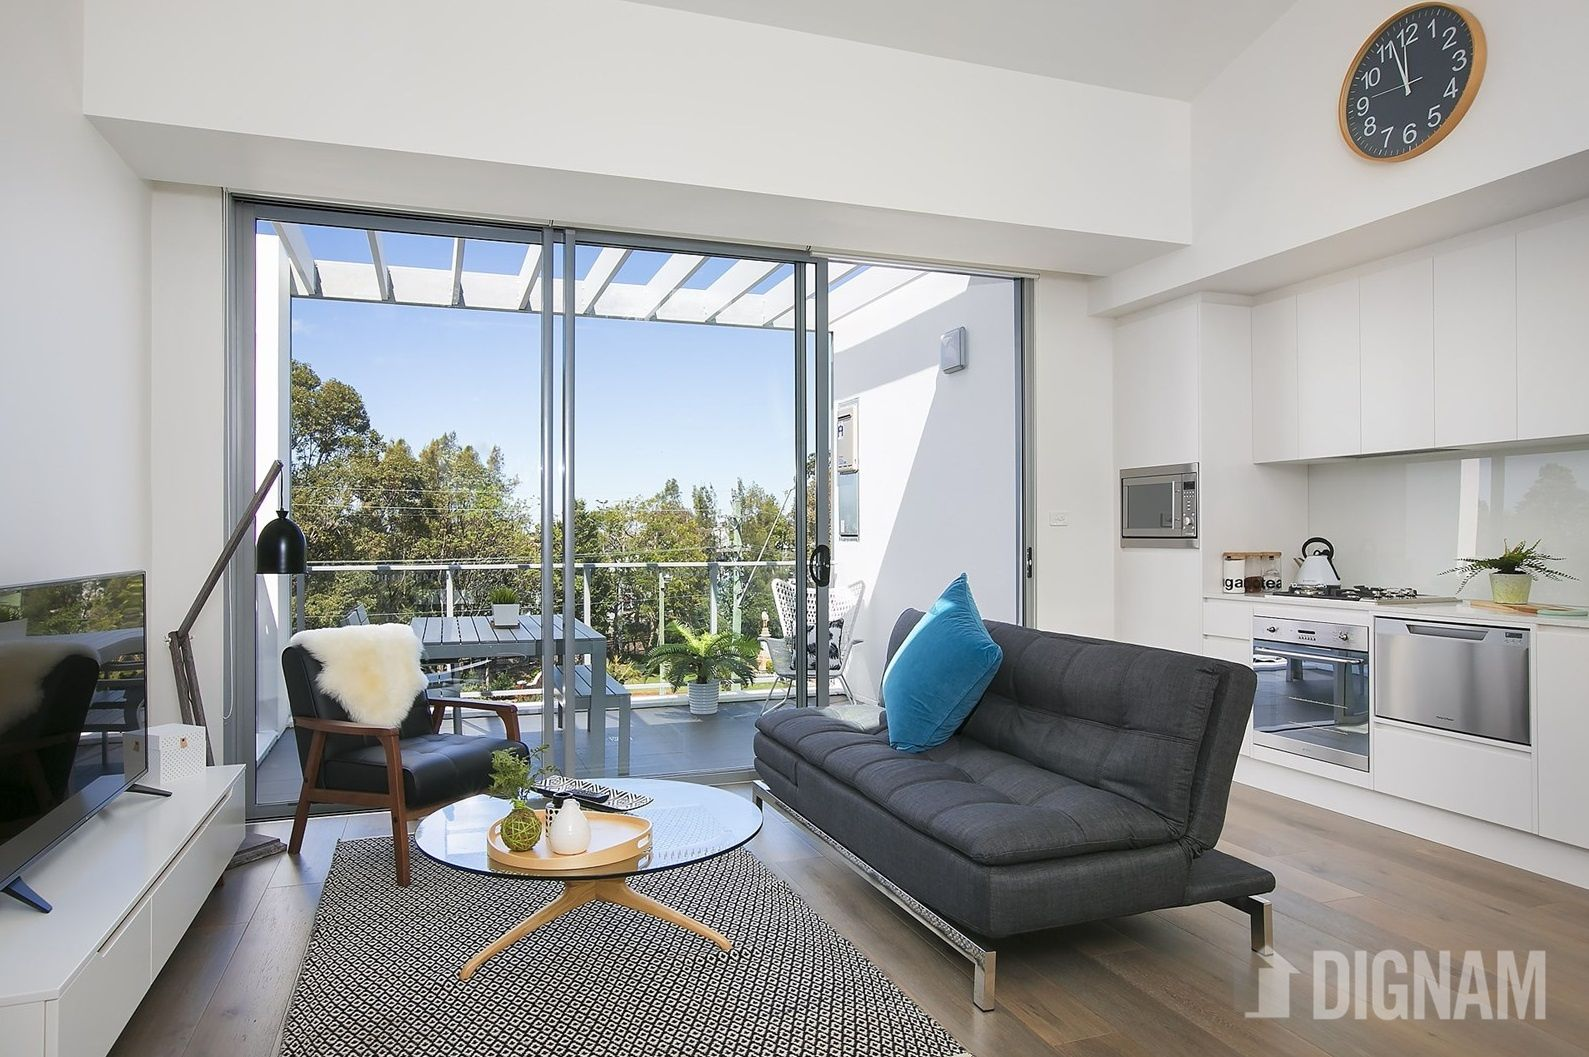 9/346-348 Lawrence Hargrave Drive, Thirroul NSW